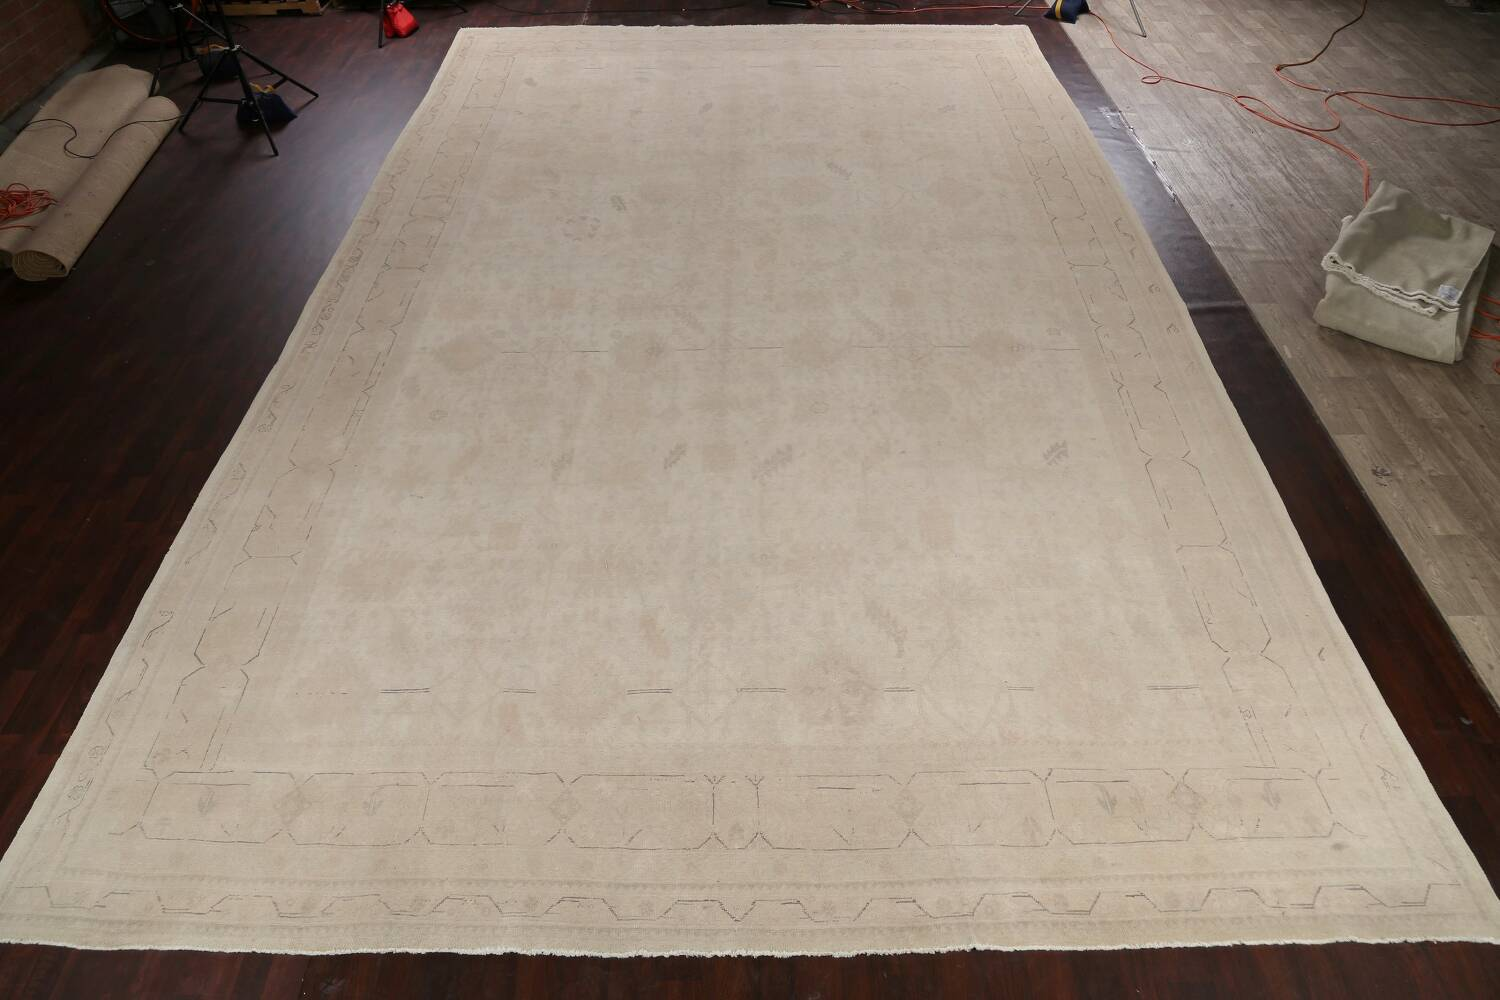 Antique Sultanabad Vegetable Dye Persian Area Rug 14x23 image 2